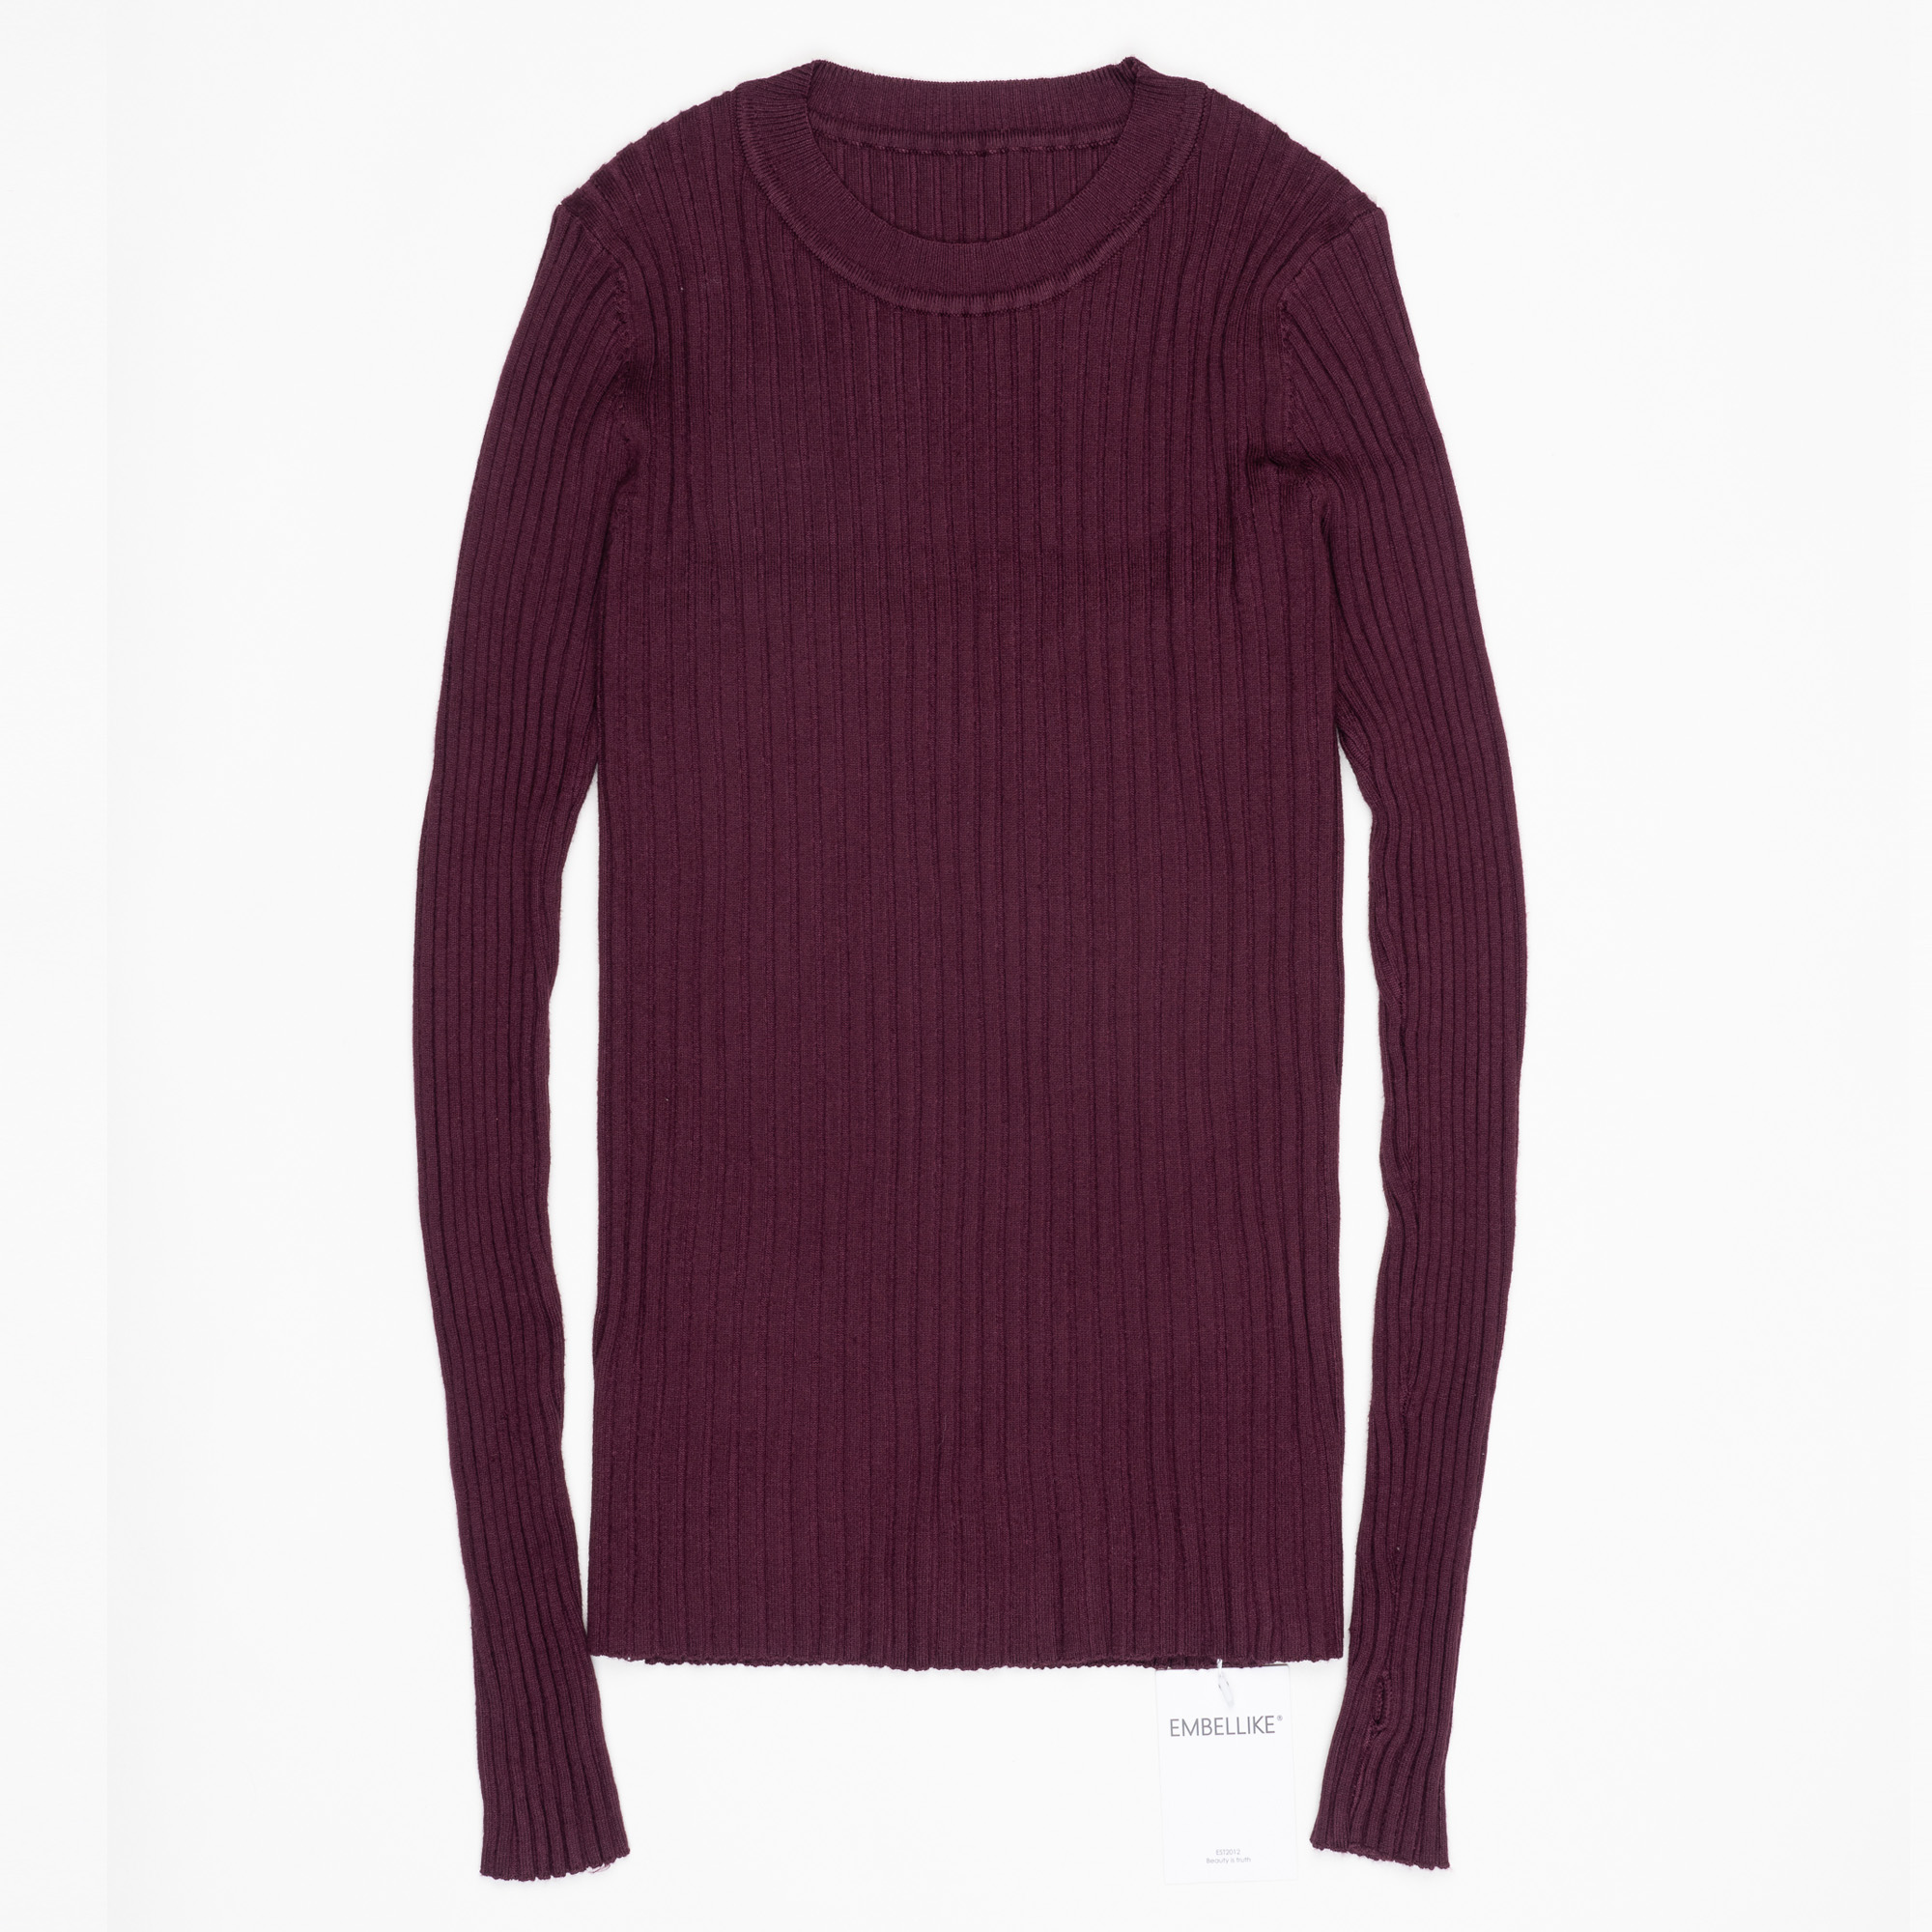 Women Sweater Pullover Basic Ribbed Sweaters Cotton Tops Knitted Solid Crew Neck With Thumb Hole 7